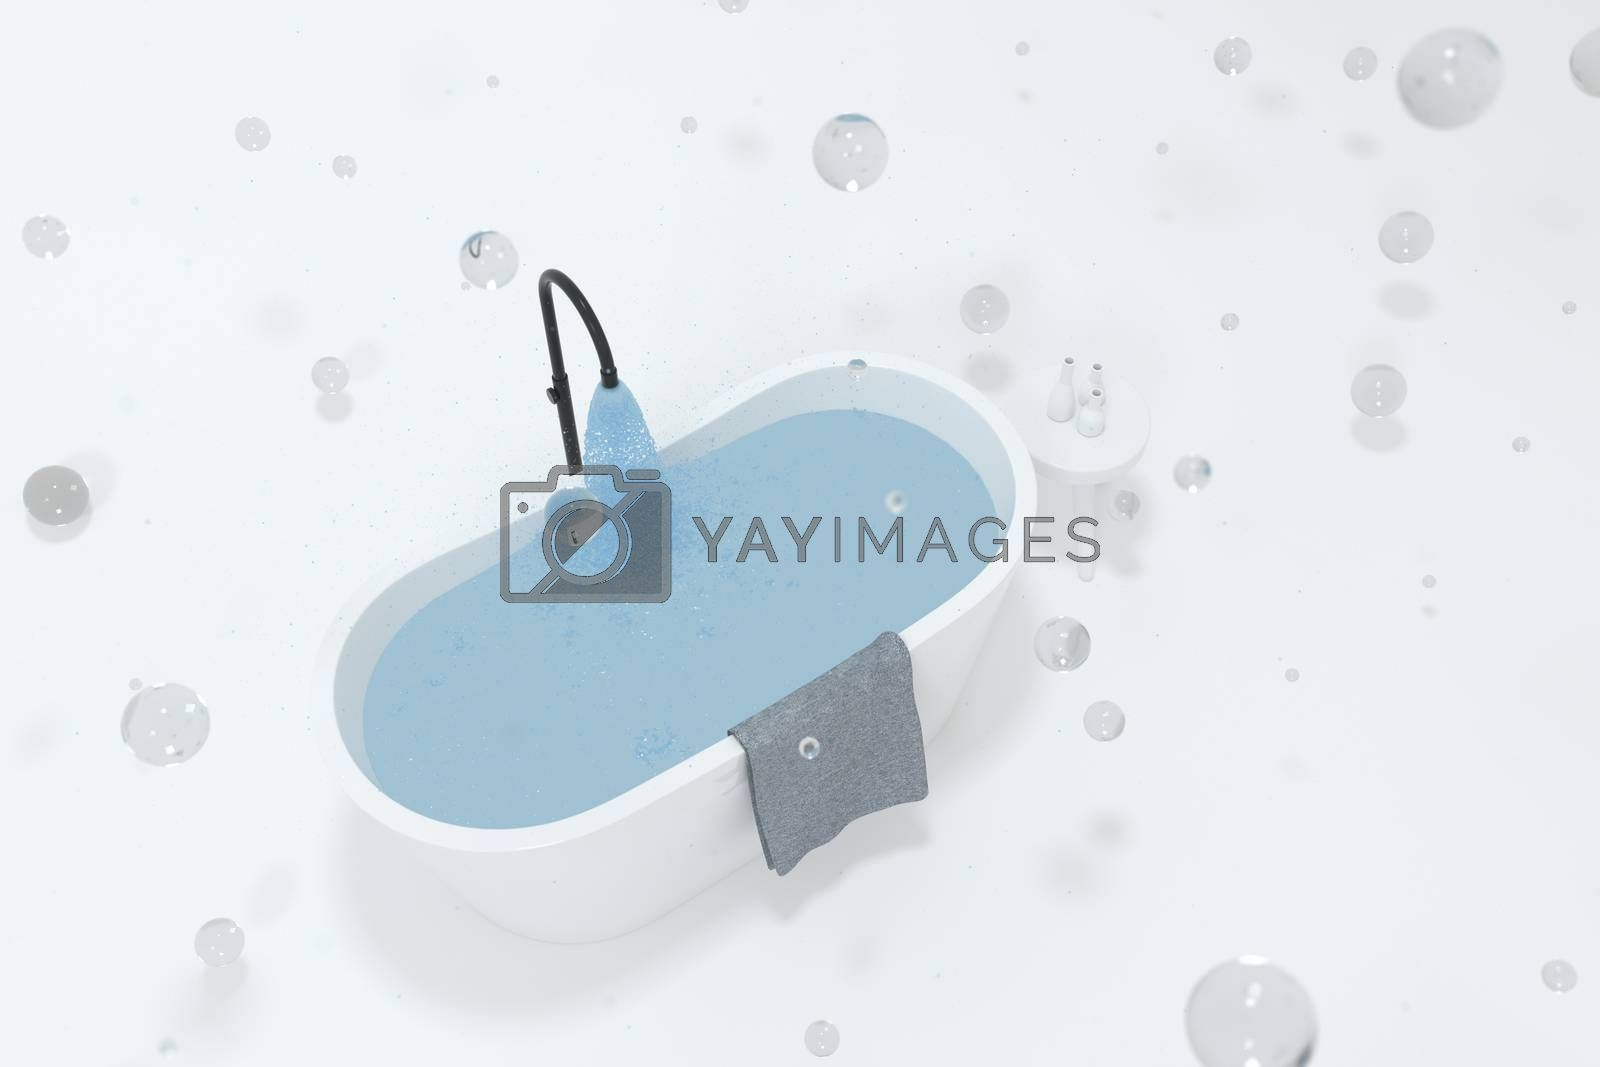 Cartoon bathtub with white background, 3d rendering. Computer digital drawing.